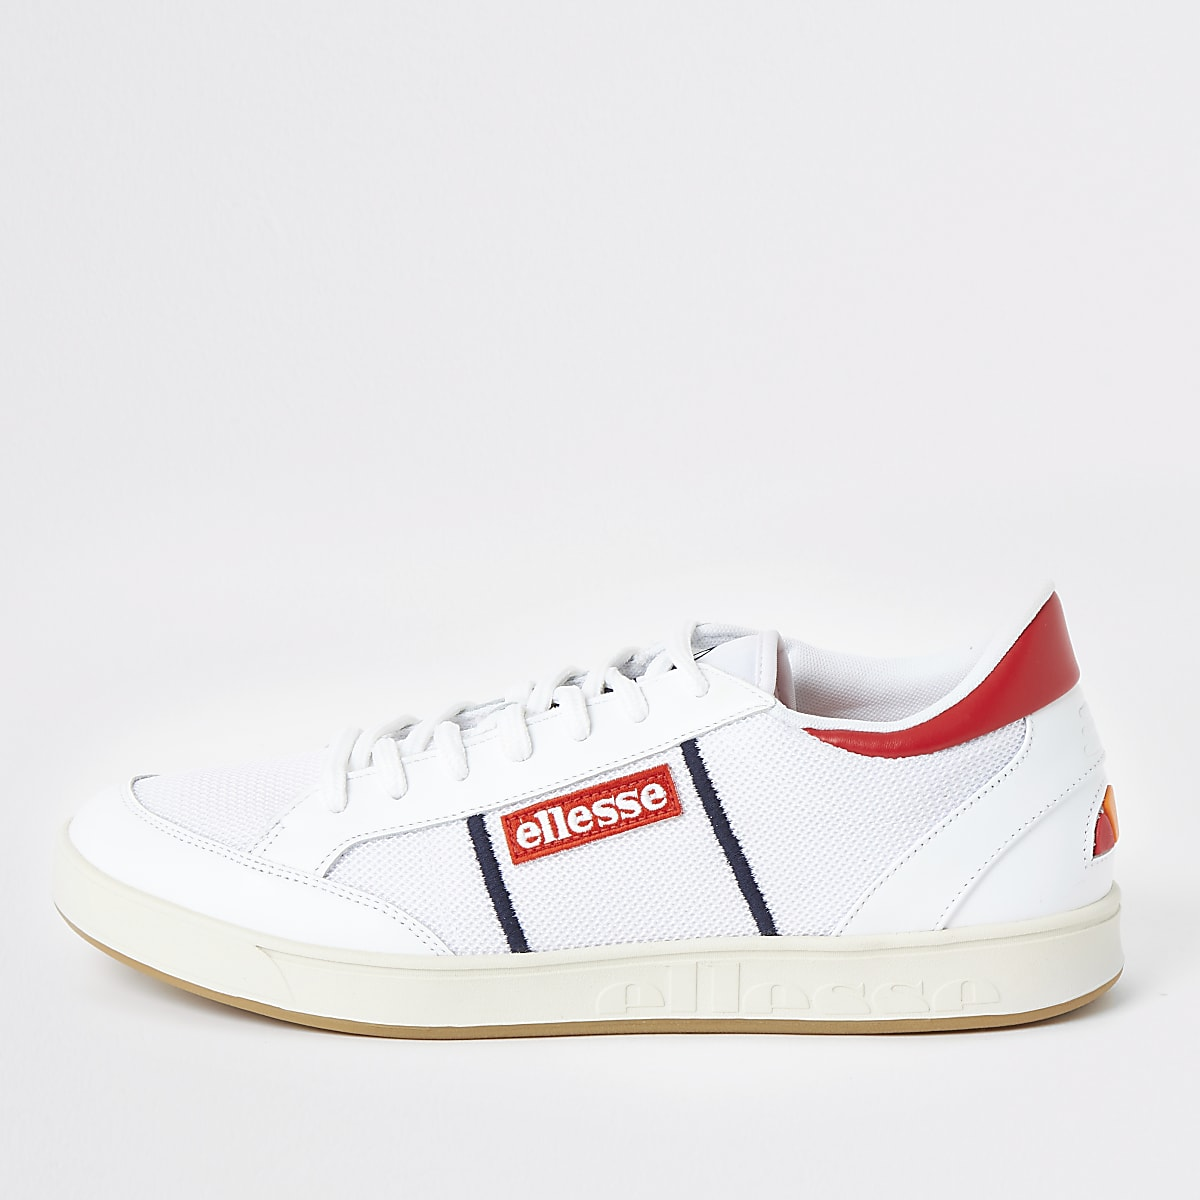 Ellesse white lace-up trainers